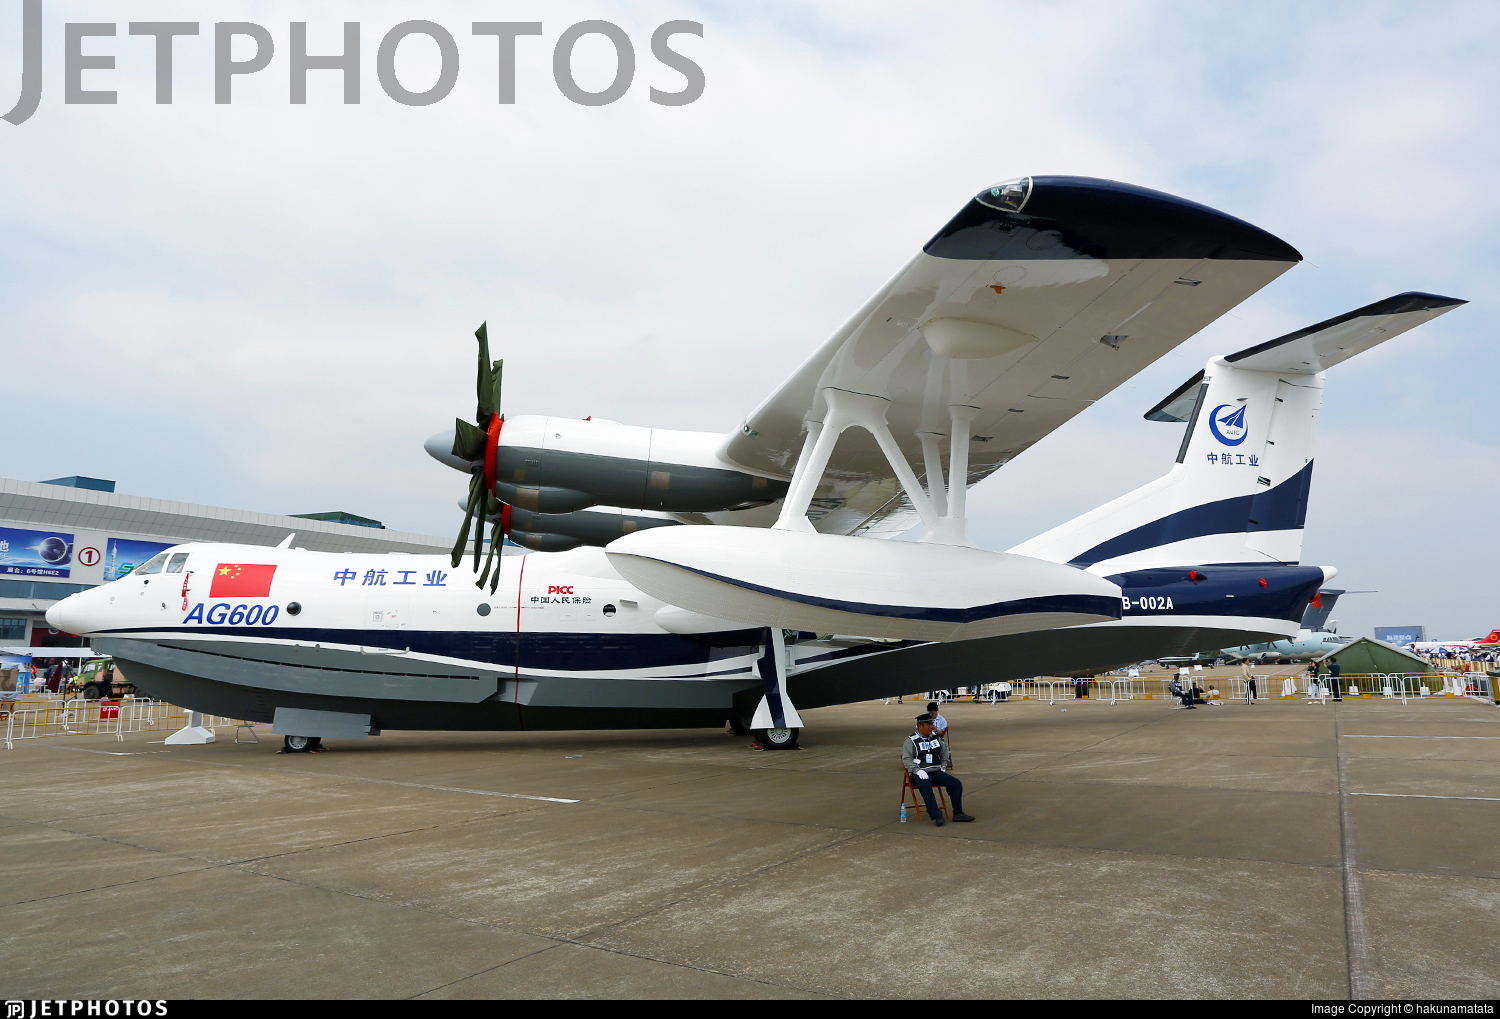 B-002A | AVIC AG-600 | China Aviation Industry Corporation - AVIC